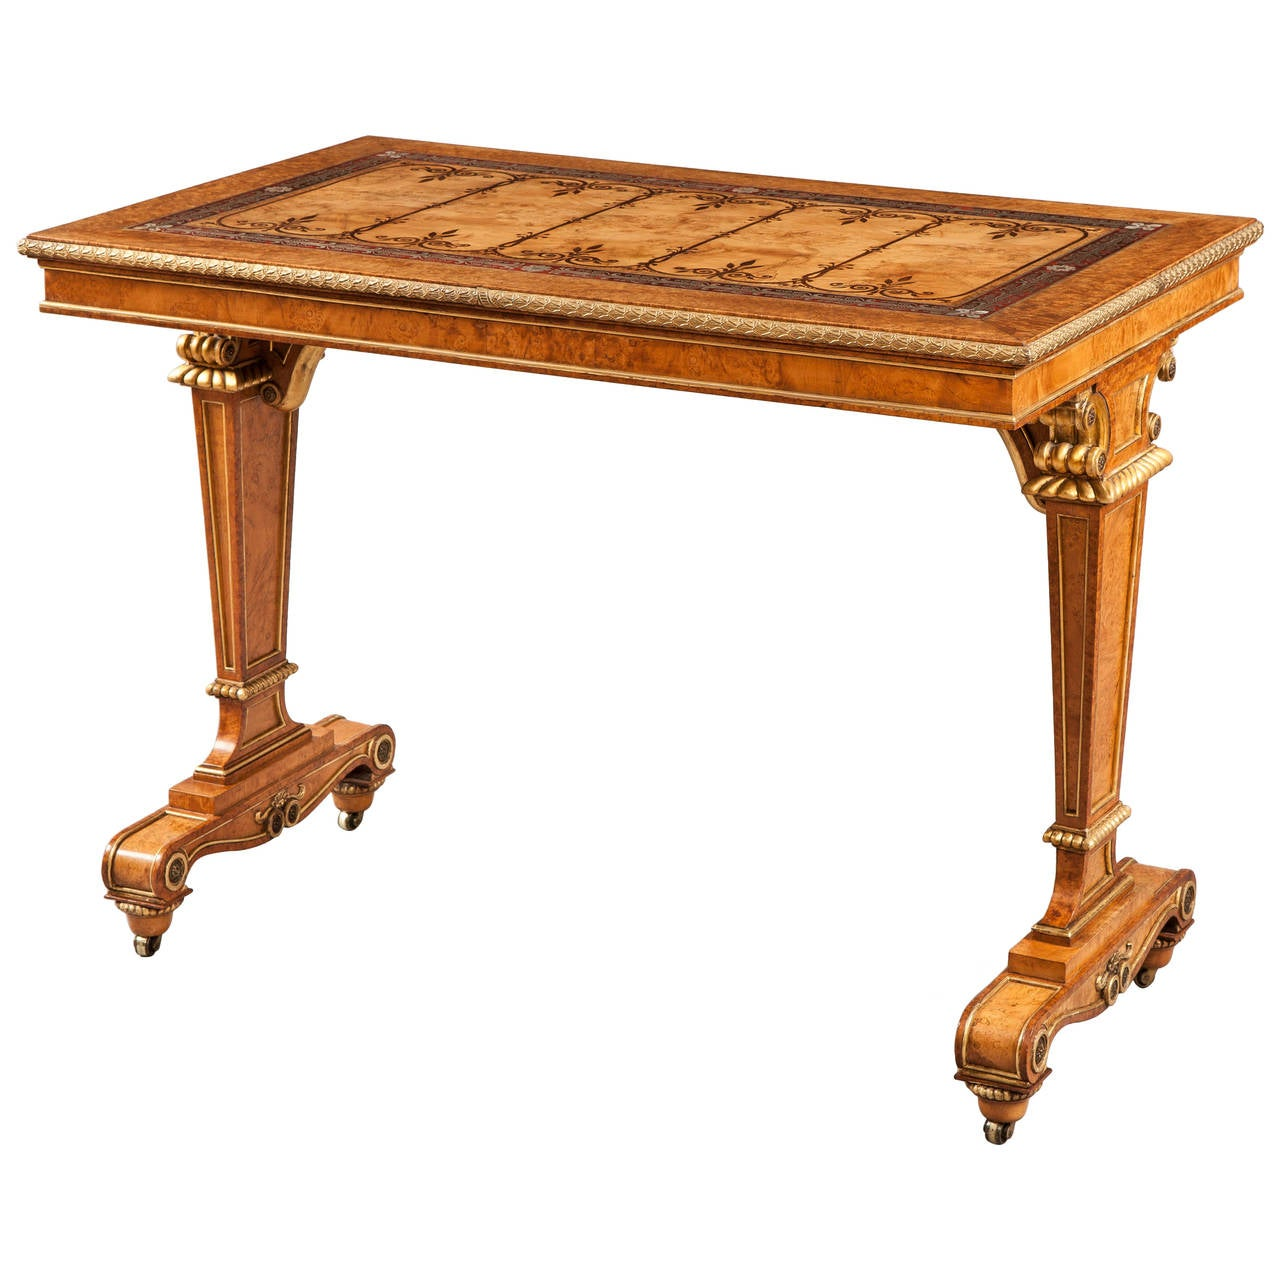 Late Georgian Center Table with Inlay and Boulle Marquetry